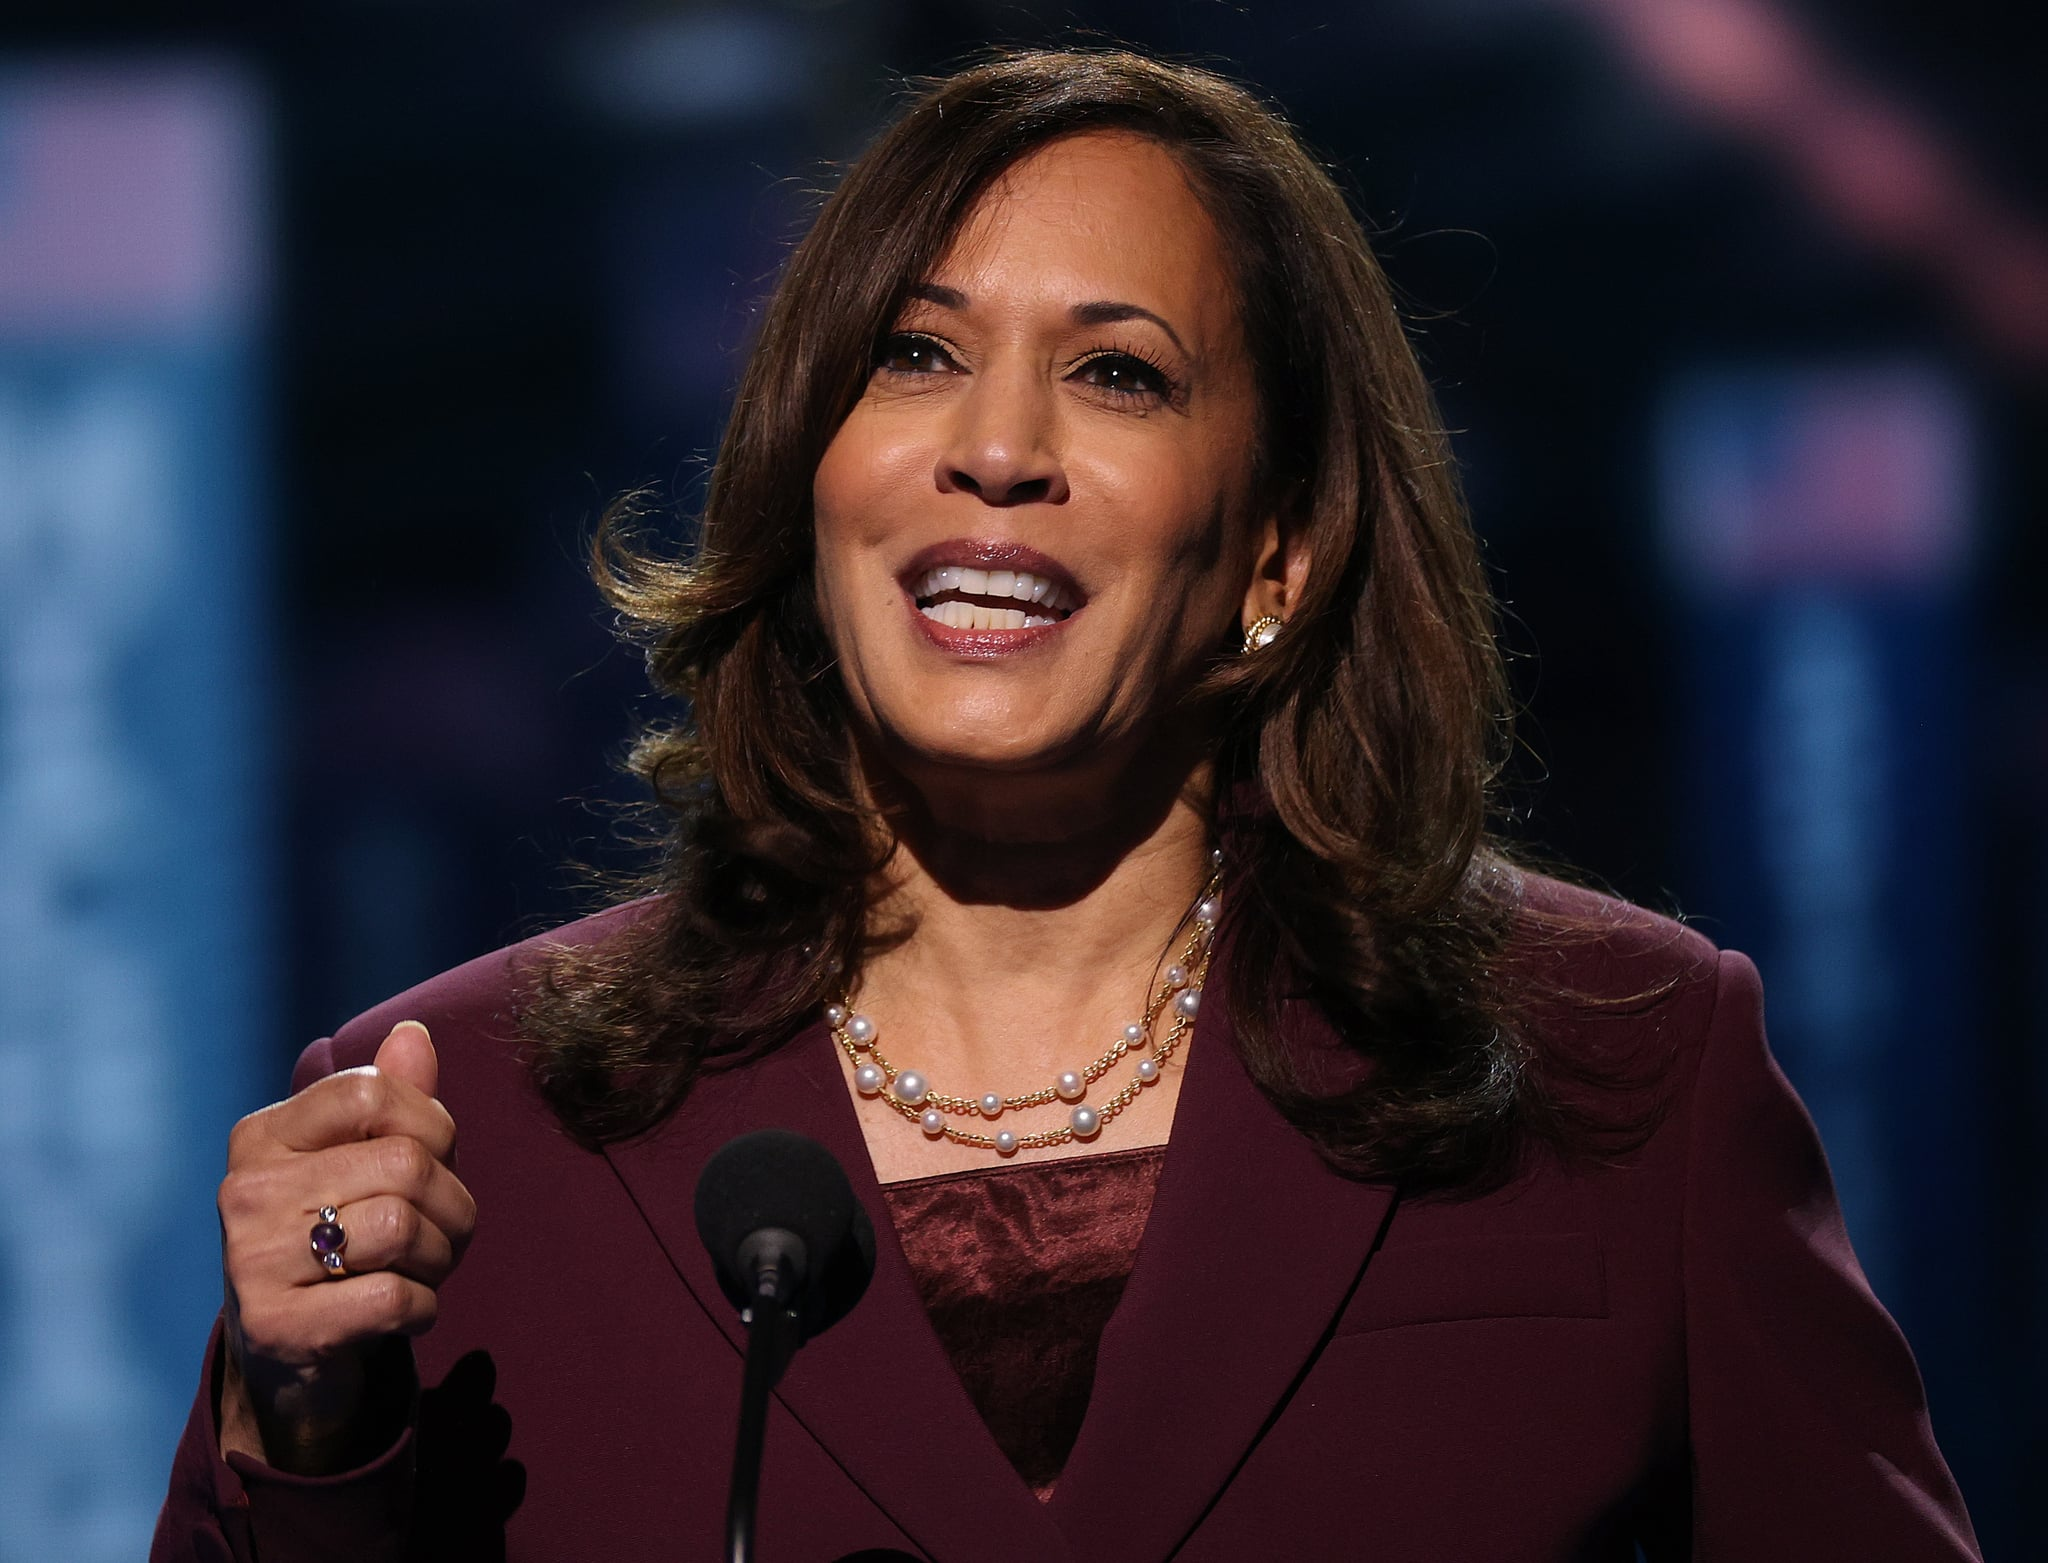 WILMINGTON, DELAWARE - AUGUST 19: Democratic vice presidential nominee U.S. Sen. Kamala Harris (D-CA) speaks on the third night of the Democratic National Convention from the Chase Center August 19, 2020 in Wilmington, Delaware. The convention, which was once expected to draw 50,000 people to Milwaukee, Wisconsin, is now taking place virtually due to the coronavirus pandemic. Harris is the first African-American, first Asian-American, and third female vice presidential candidate on a major party ticket. (Photo by Win McNamee/Getty Images)